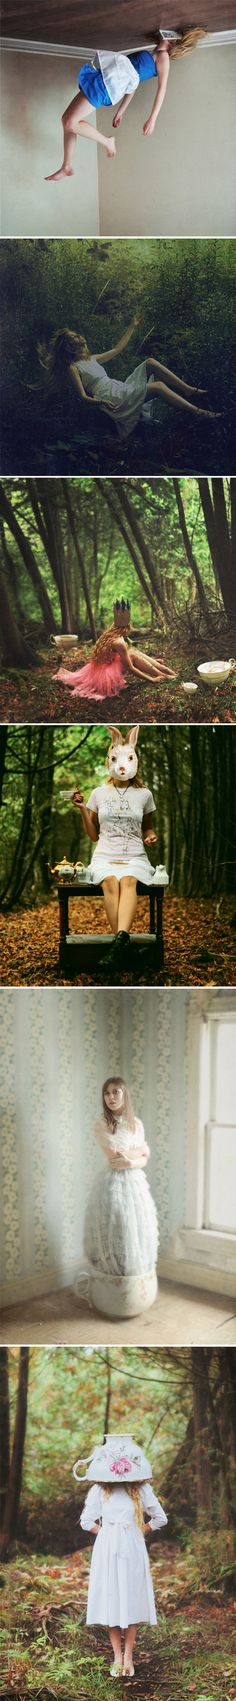 Let's Play Pretend is the title of this Alice in Wonderland inspired photographic series, by Canadian artist Lissy Laricchia.